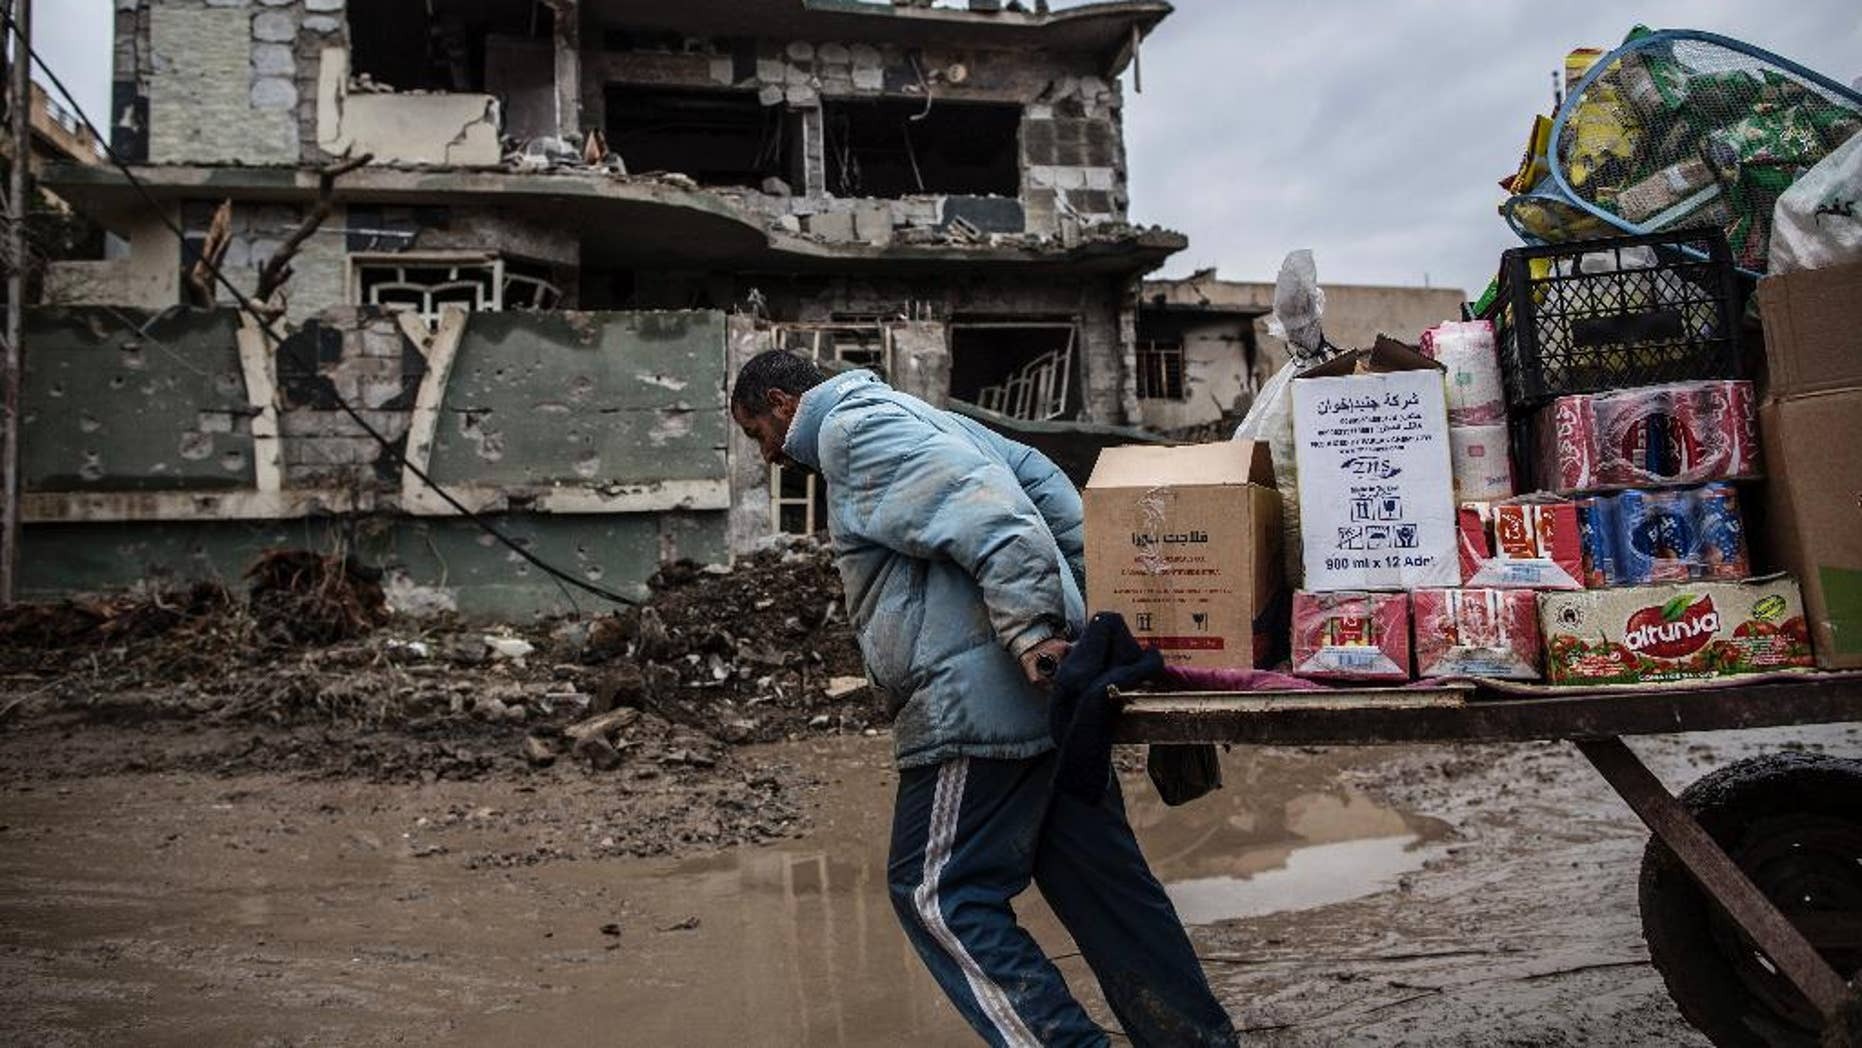 A street vendor pulls his cart in front of a house damaged by the fight in Mishraq district in Mosul, Iraq, Tuesday, Dec. 20, 2016. Advancing into Mosul has become a painful slog for Iraqi forces. Islamic State group militants have fortified each neighborhood, unlike past battles where they concentrated their defenses in one part of the city. (AP Photo/Manu Brabo)